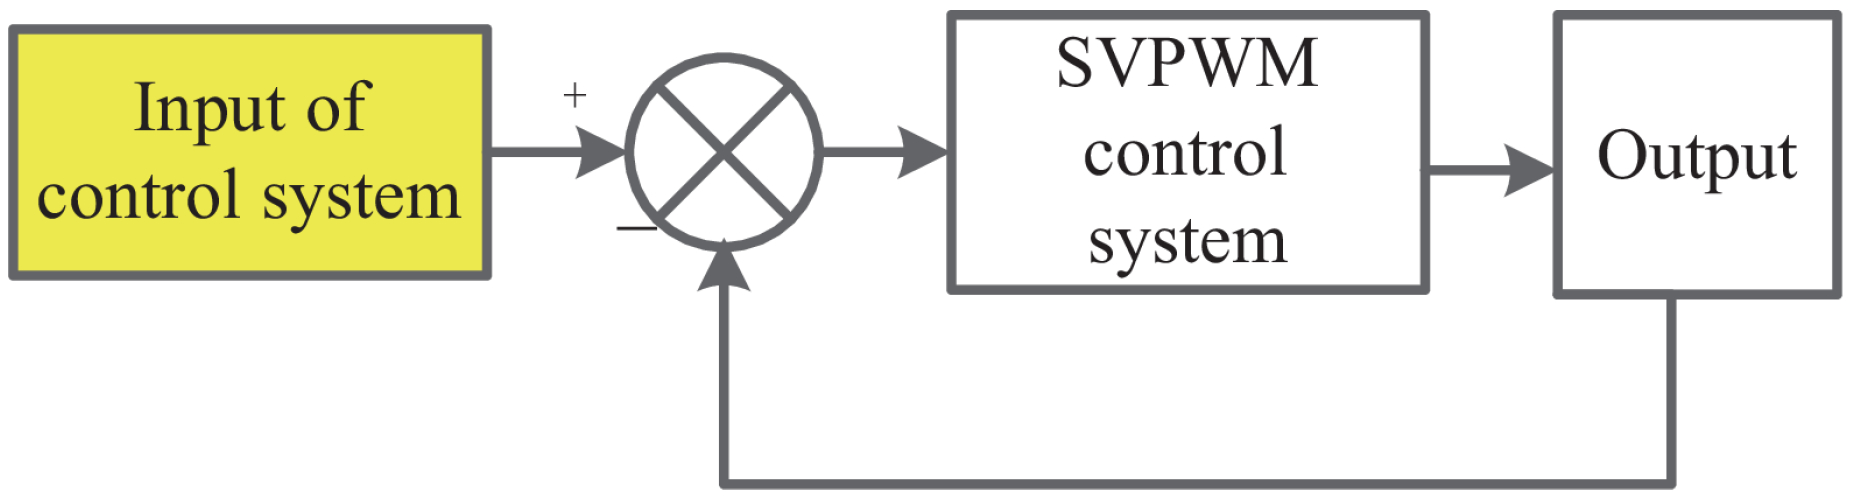 Energies Free Full Text Analysis And Speed Ripple Mitigation Of Pulse Width Modulation Used For Motor Control No